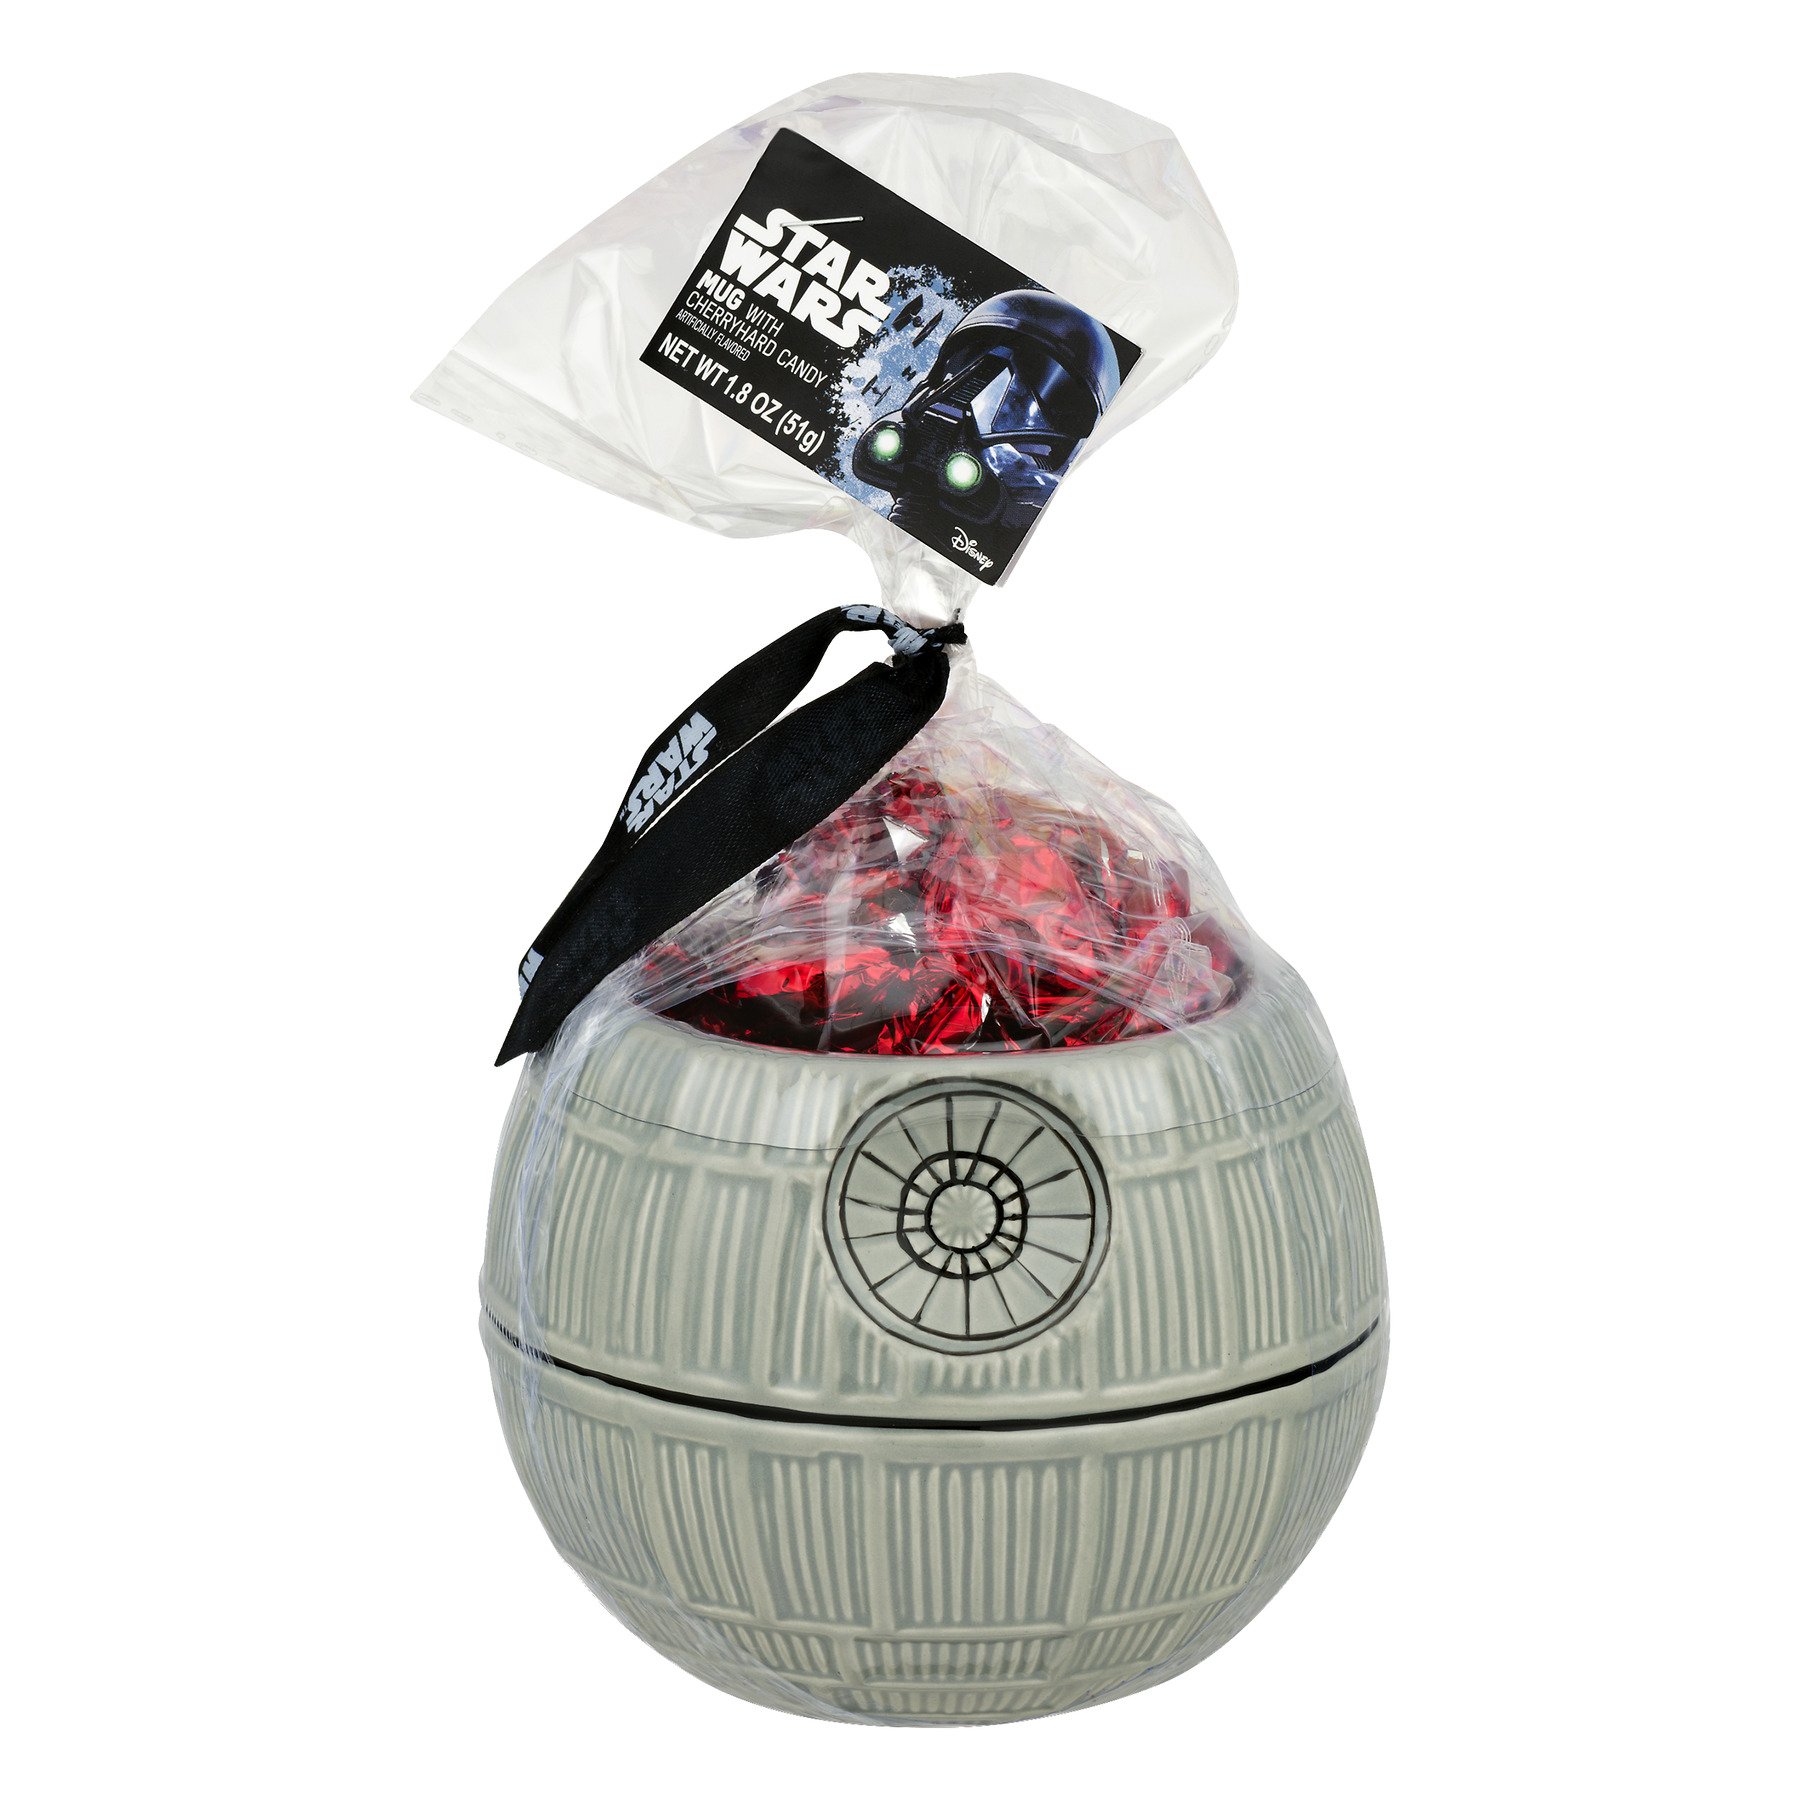 Star Wars Mug With Cherry Hard Candy, 1.8 OZ